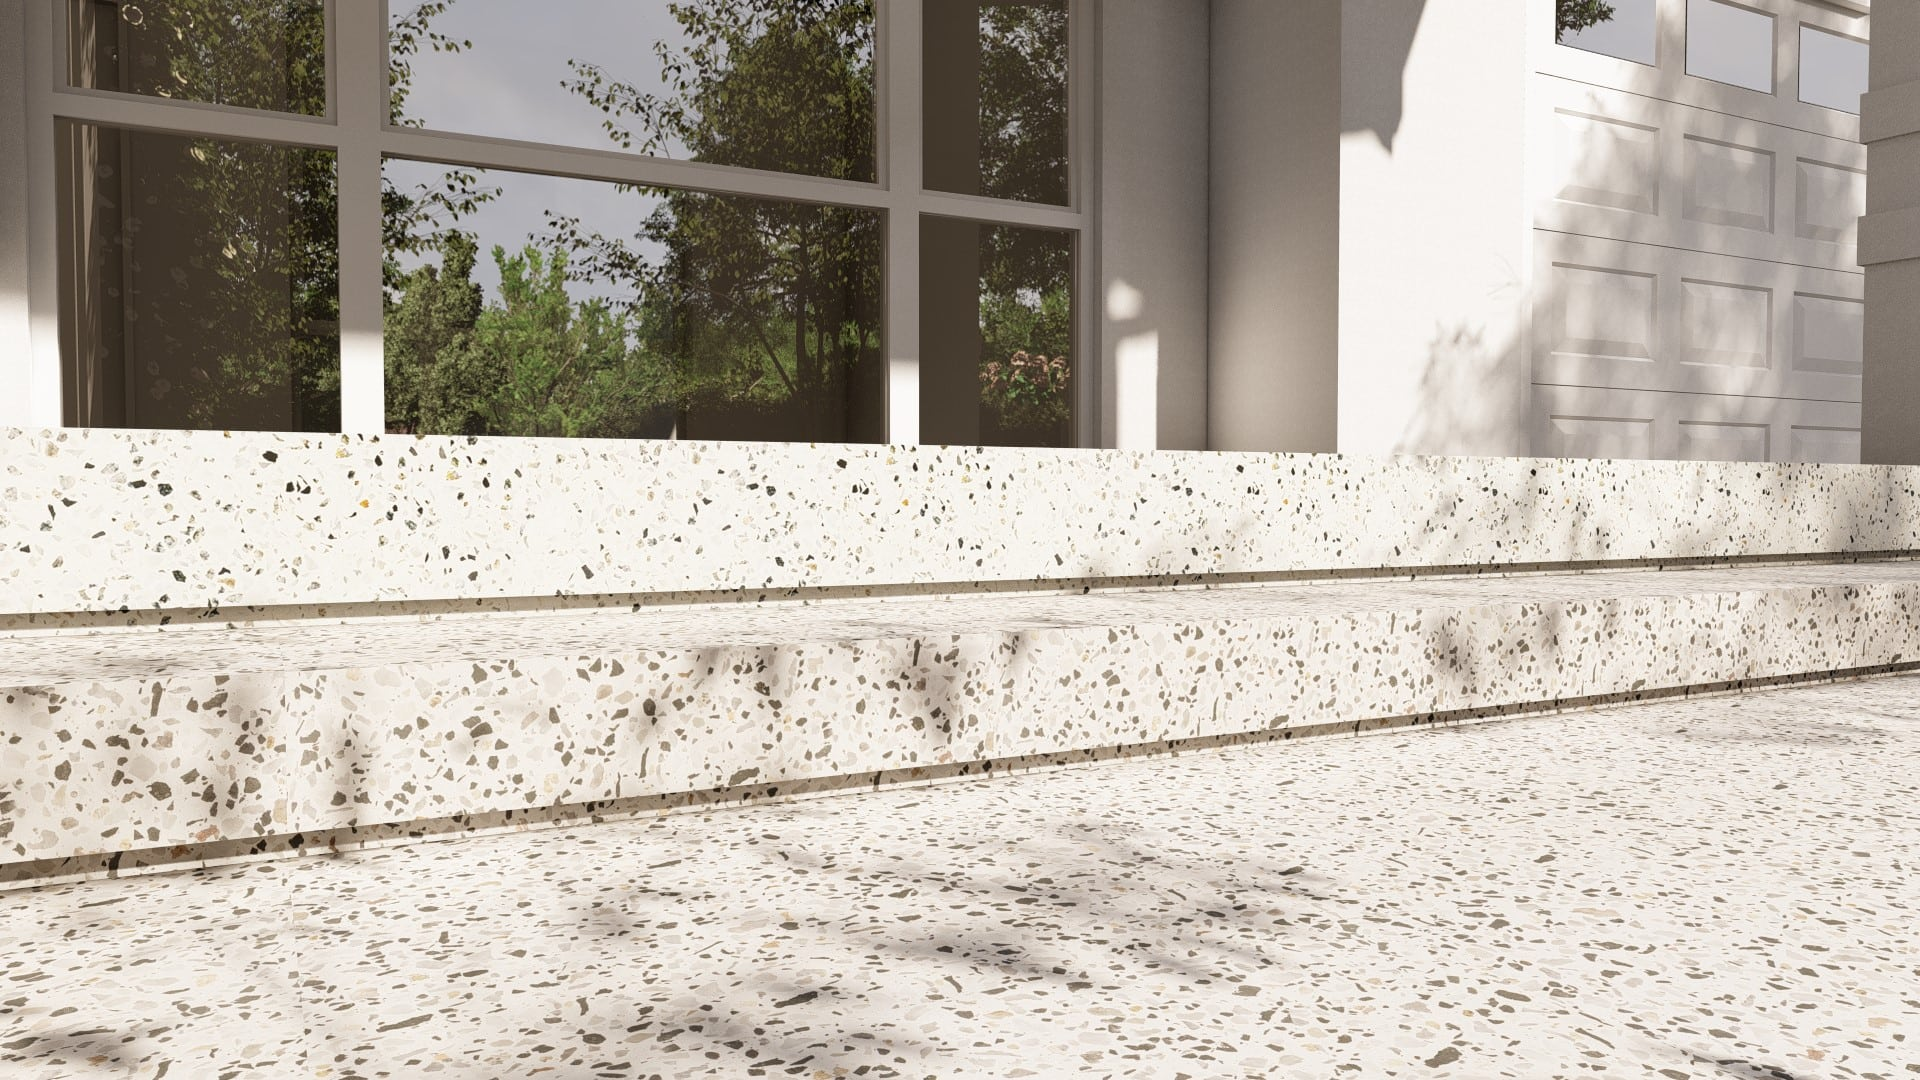 Perth Decorative Concrete verge appeal front pathway exposed aggregate driveway applecross long alfresco porch steps